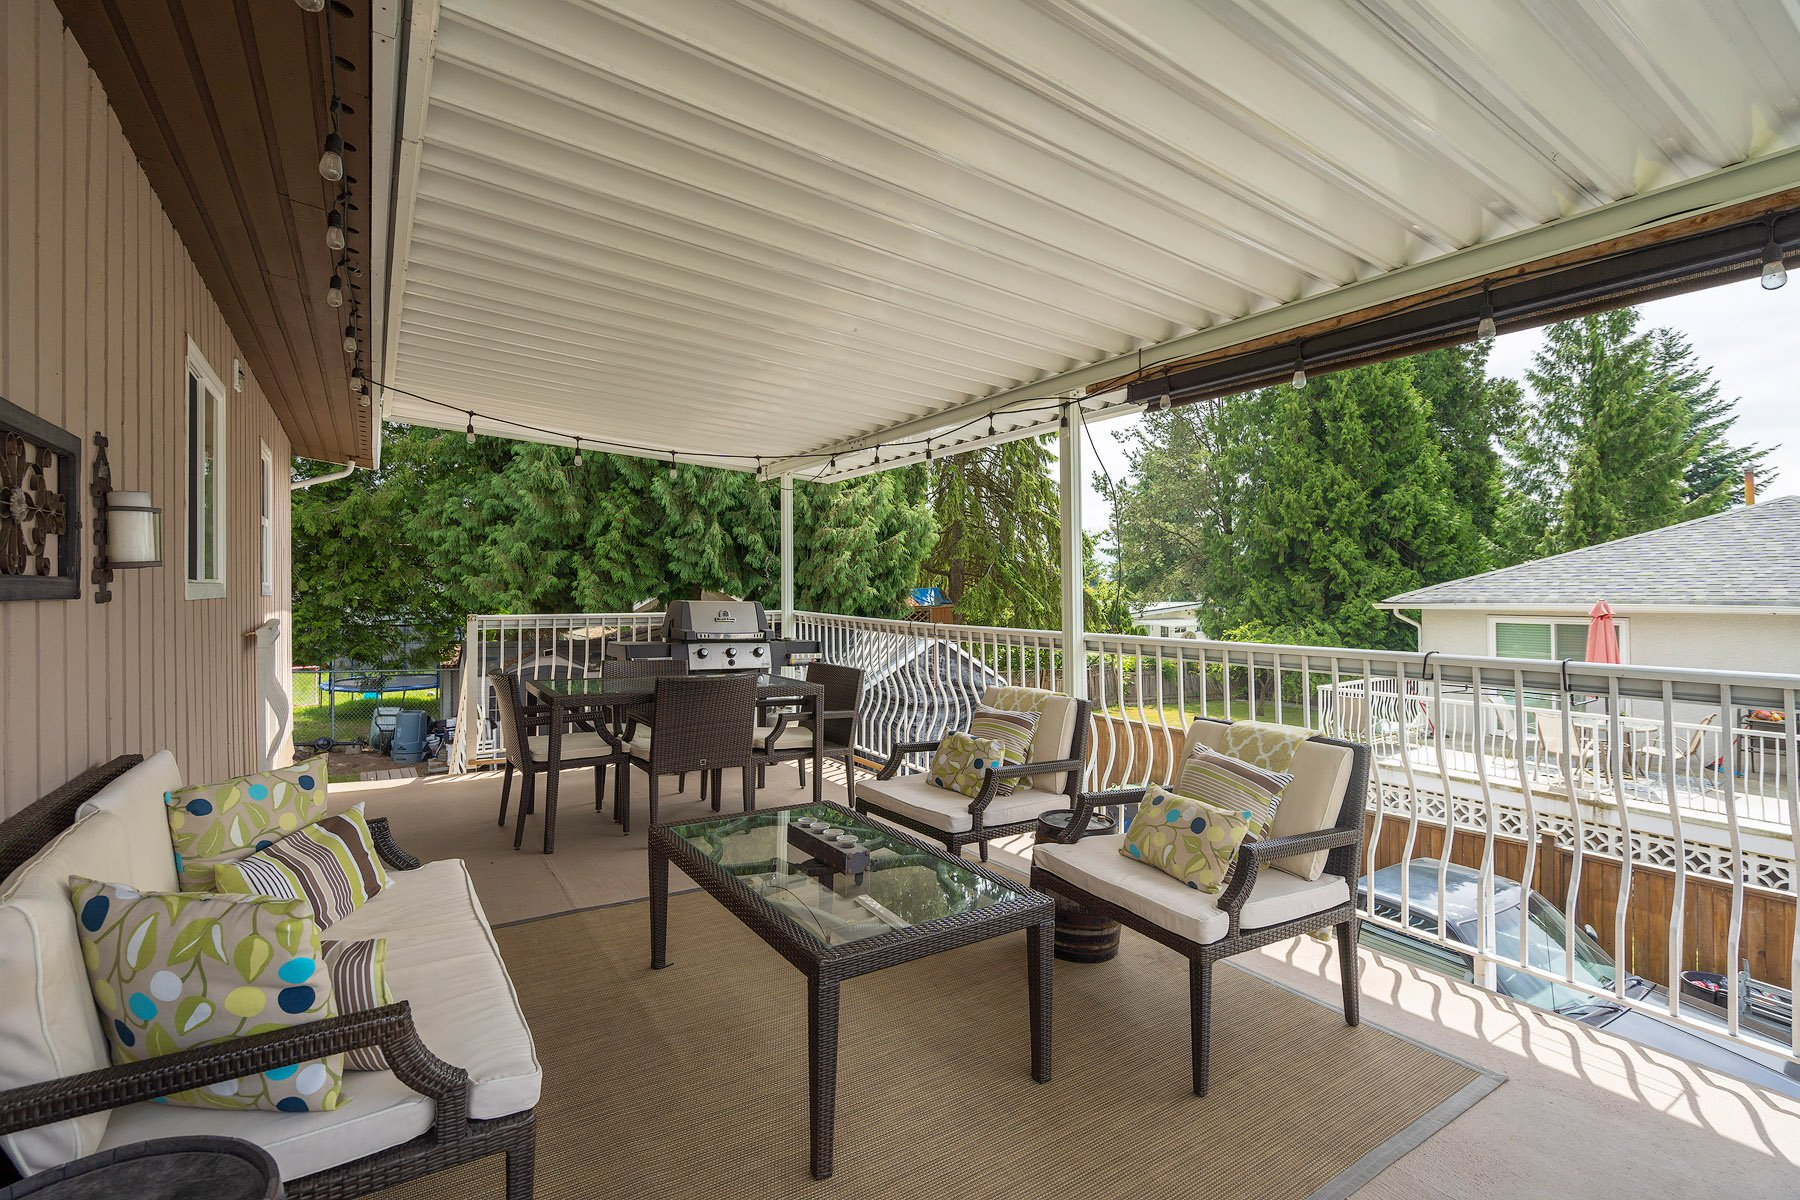 Photo 23: Photos: 423 MONTGOMERY Street in Coquitlam: Central Coquitlam House for sale : MLS®# R2380693